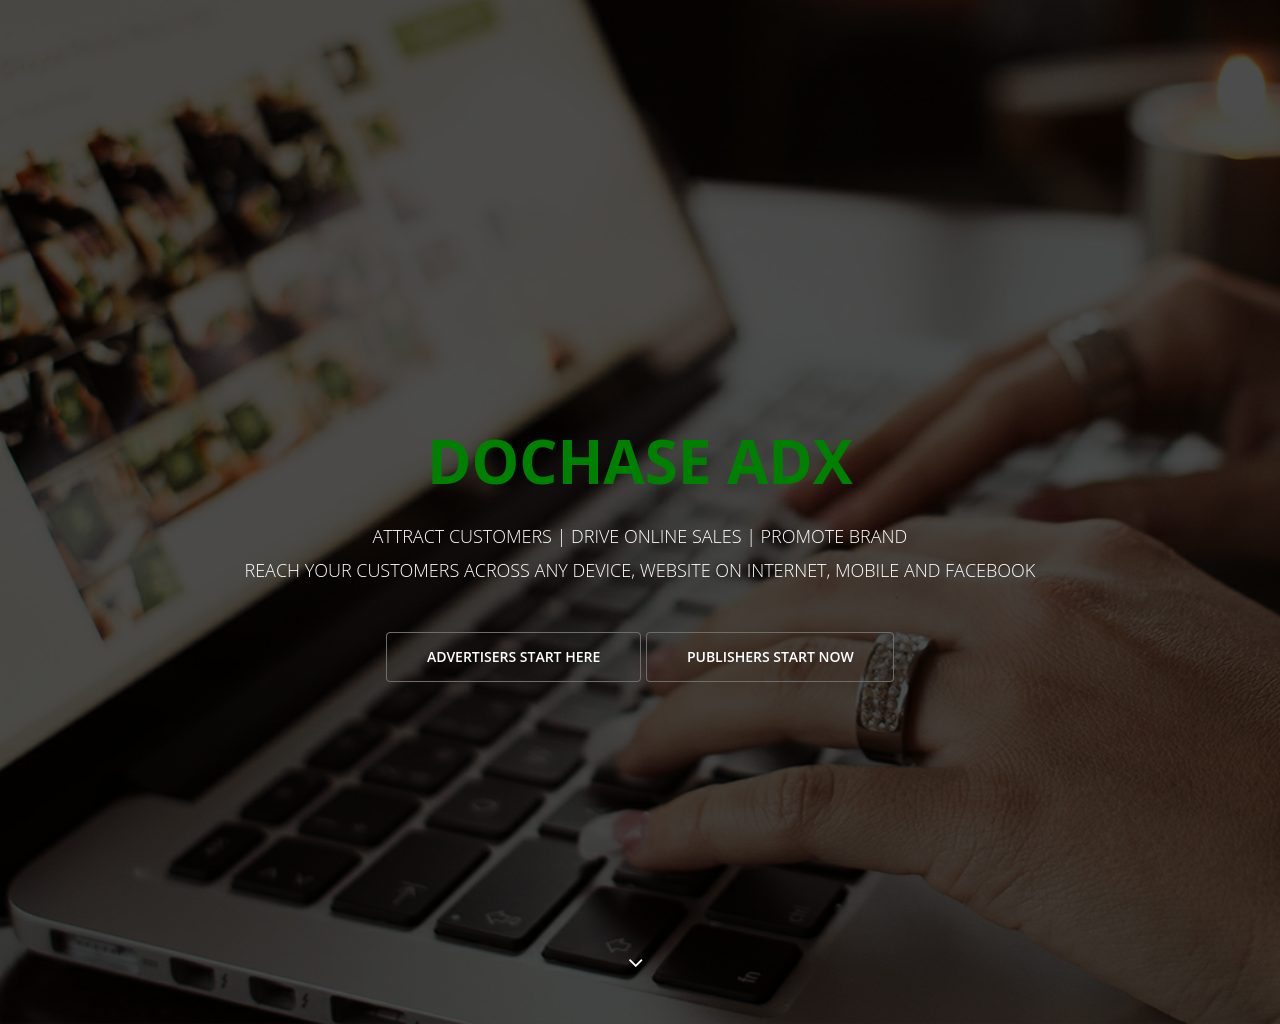 Dochase-Ad-exchange-Advertising-Reviews-Pricing